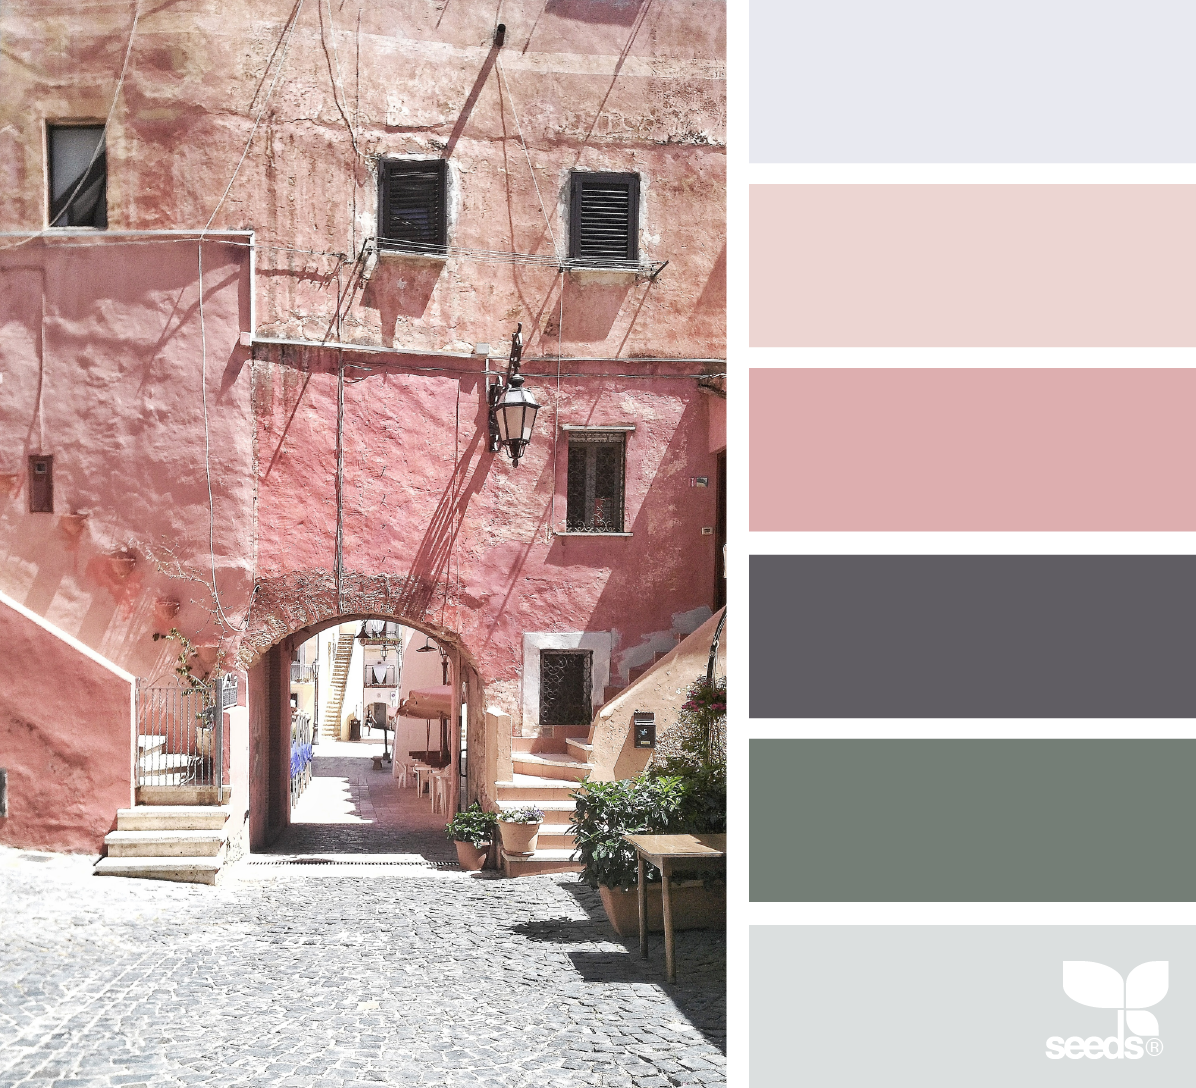 Wanderlust Hues | Color inspirations | Pinterest | Wanderlust, Seeds ...